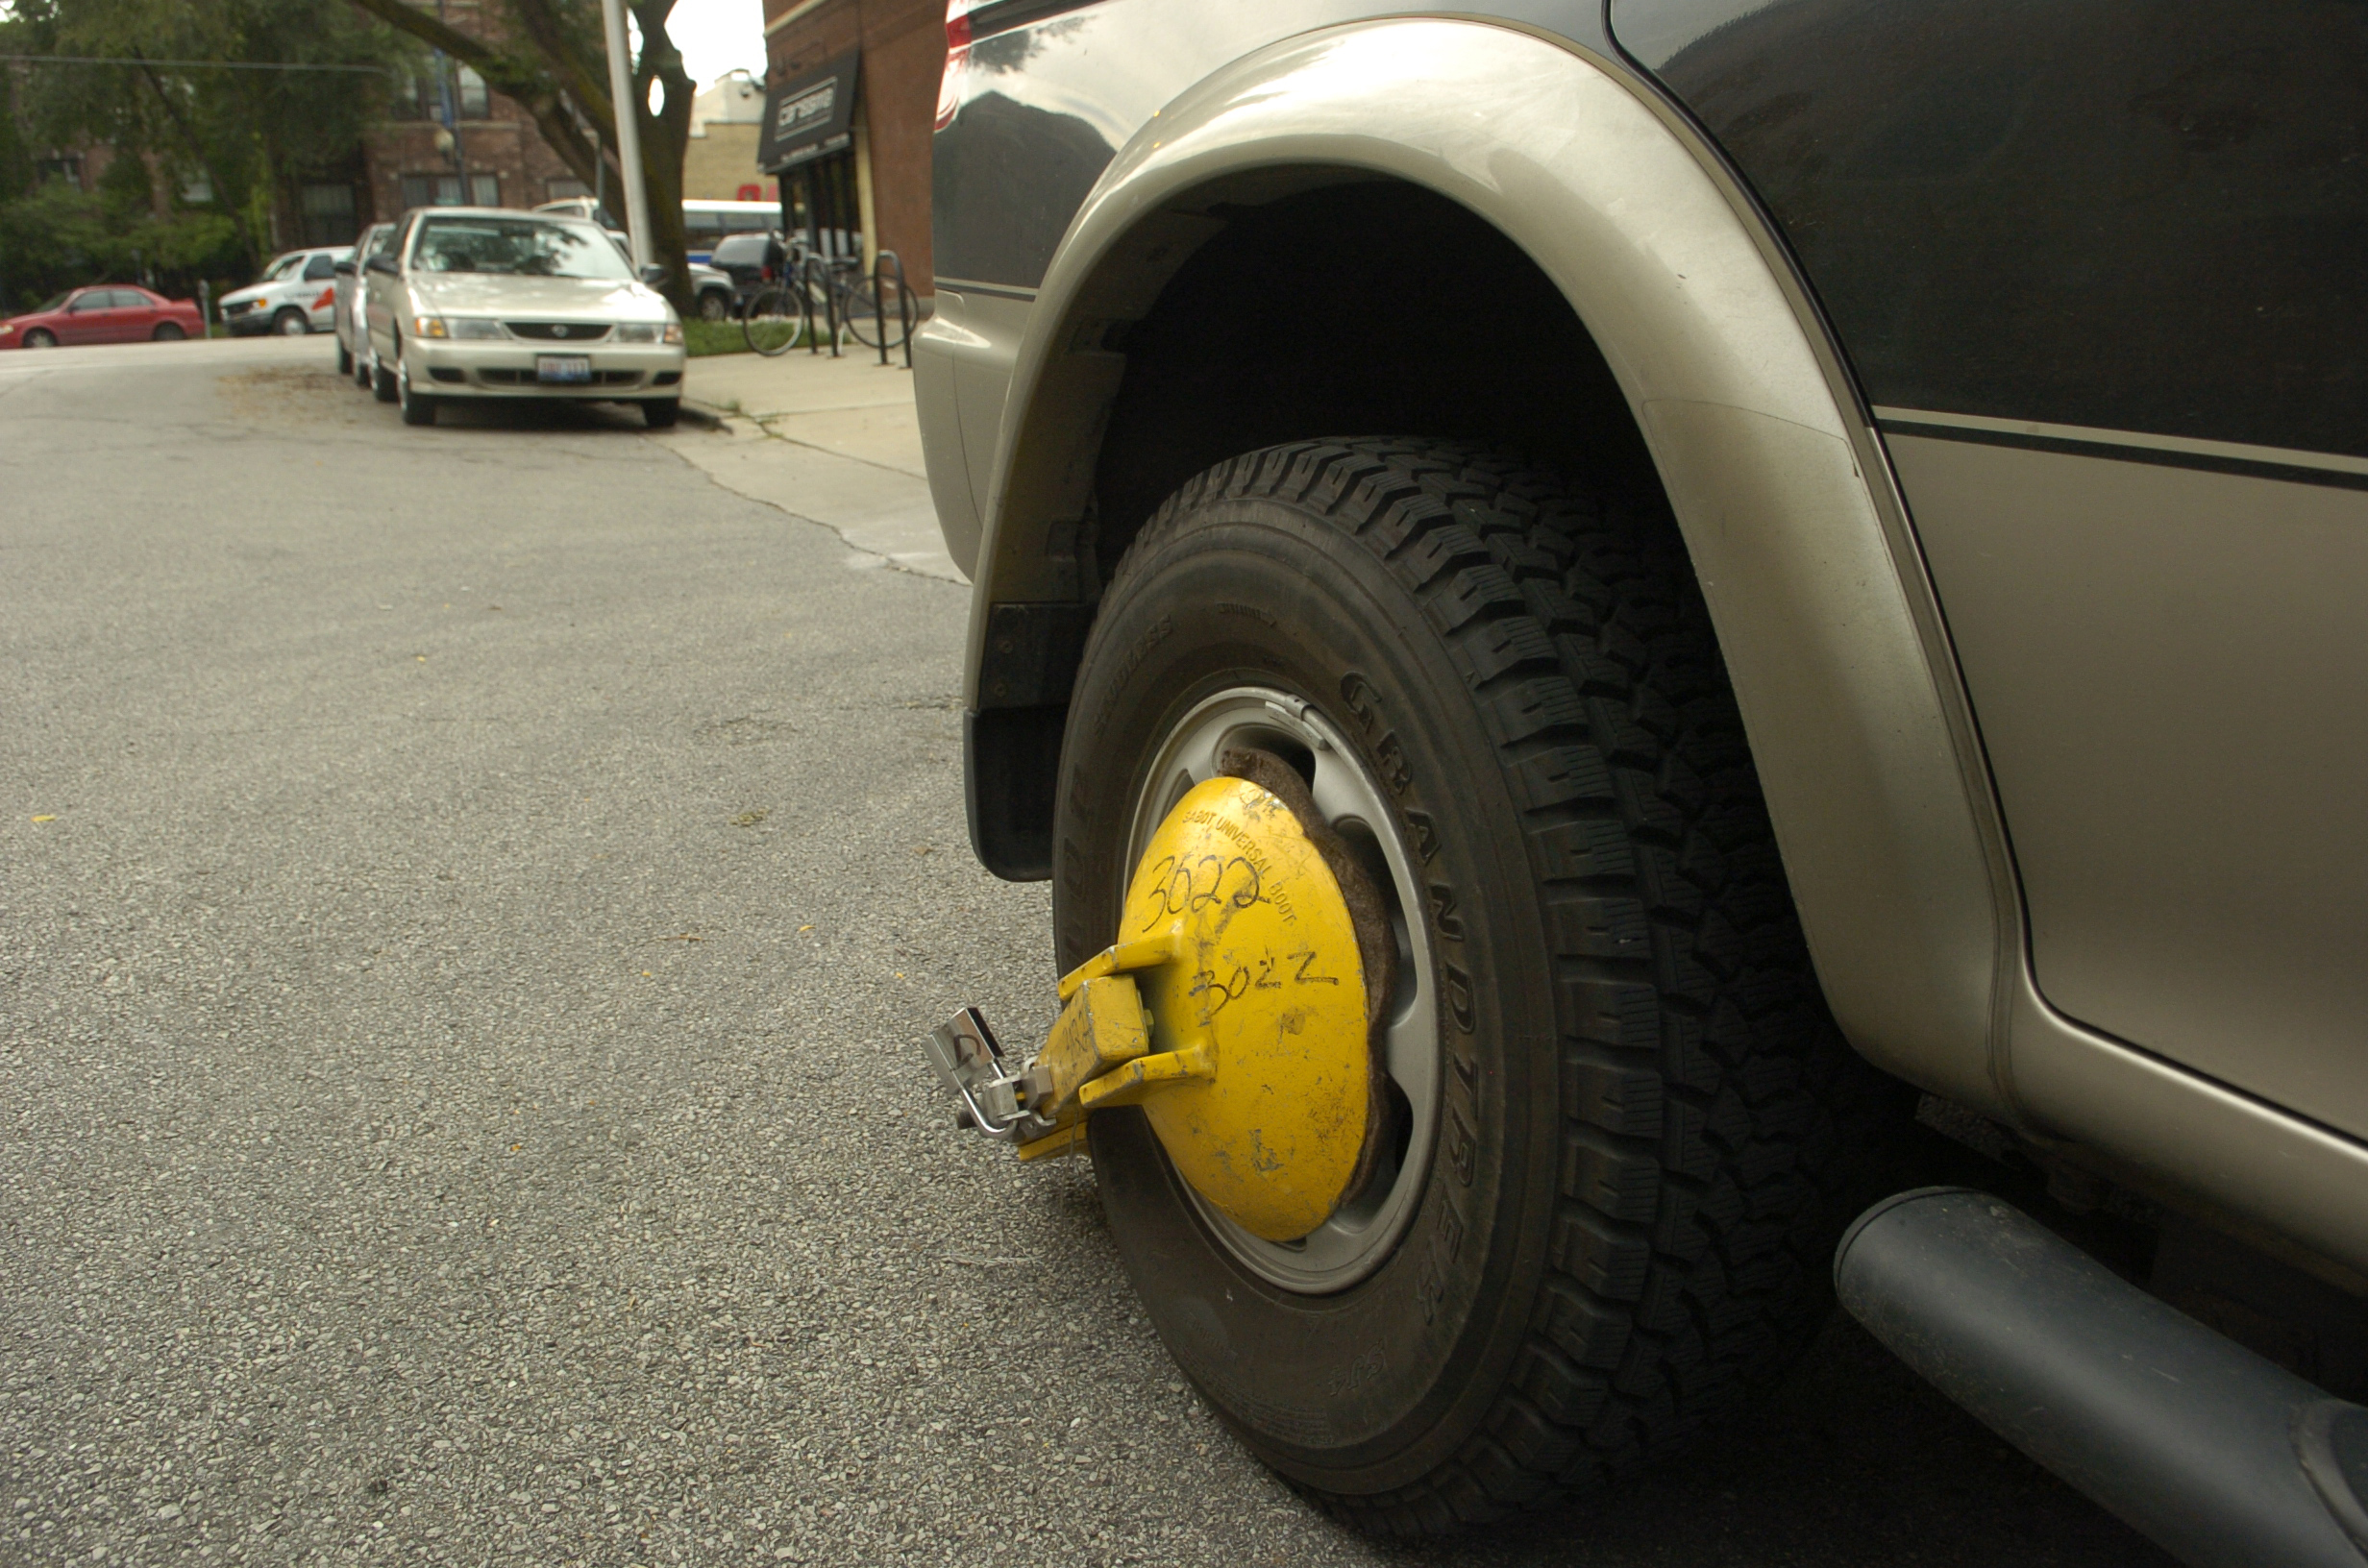 A boot attached to a vehicle in Chicago.